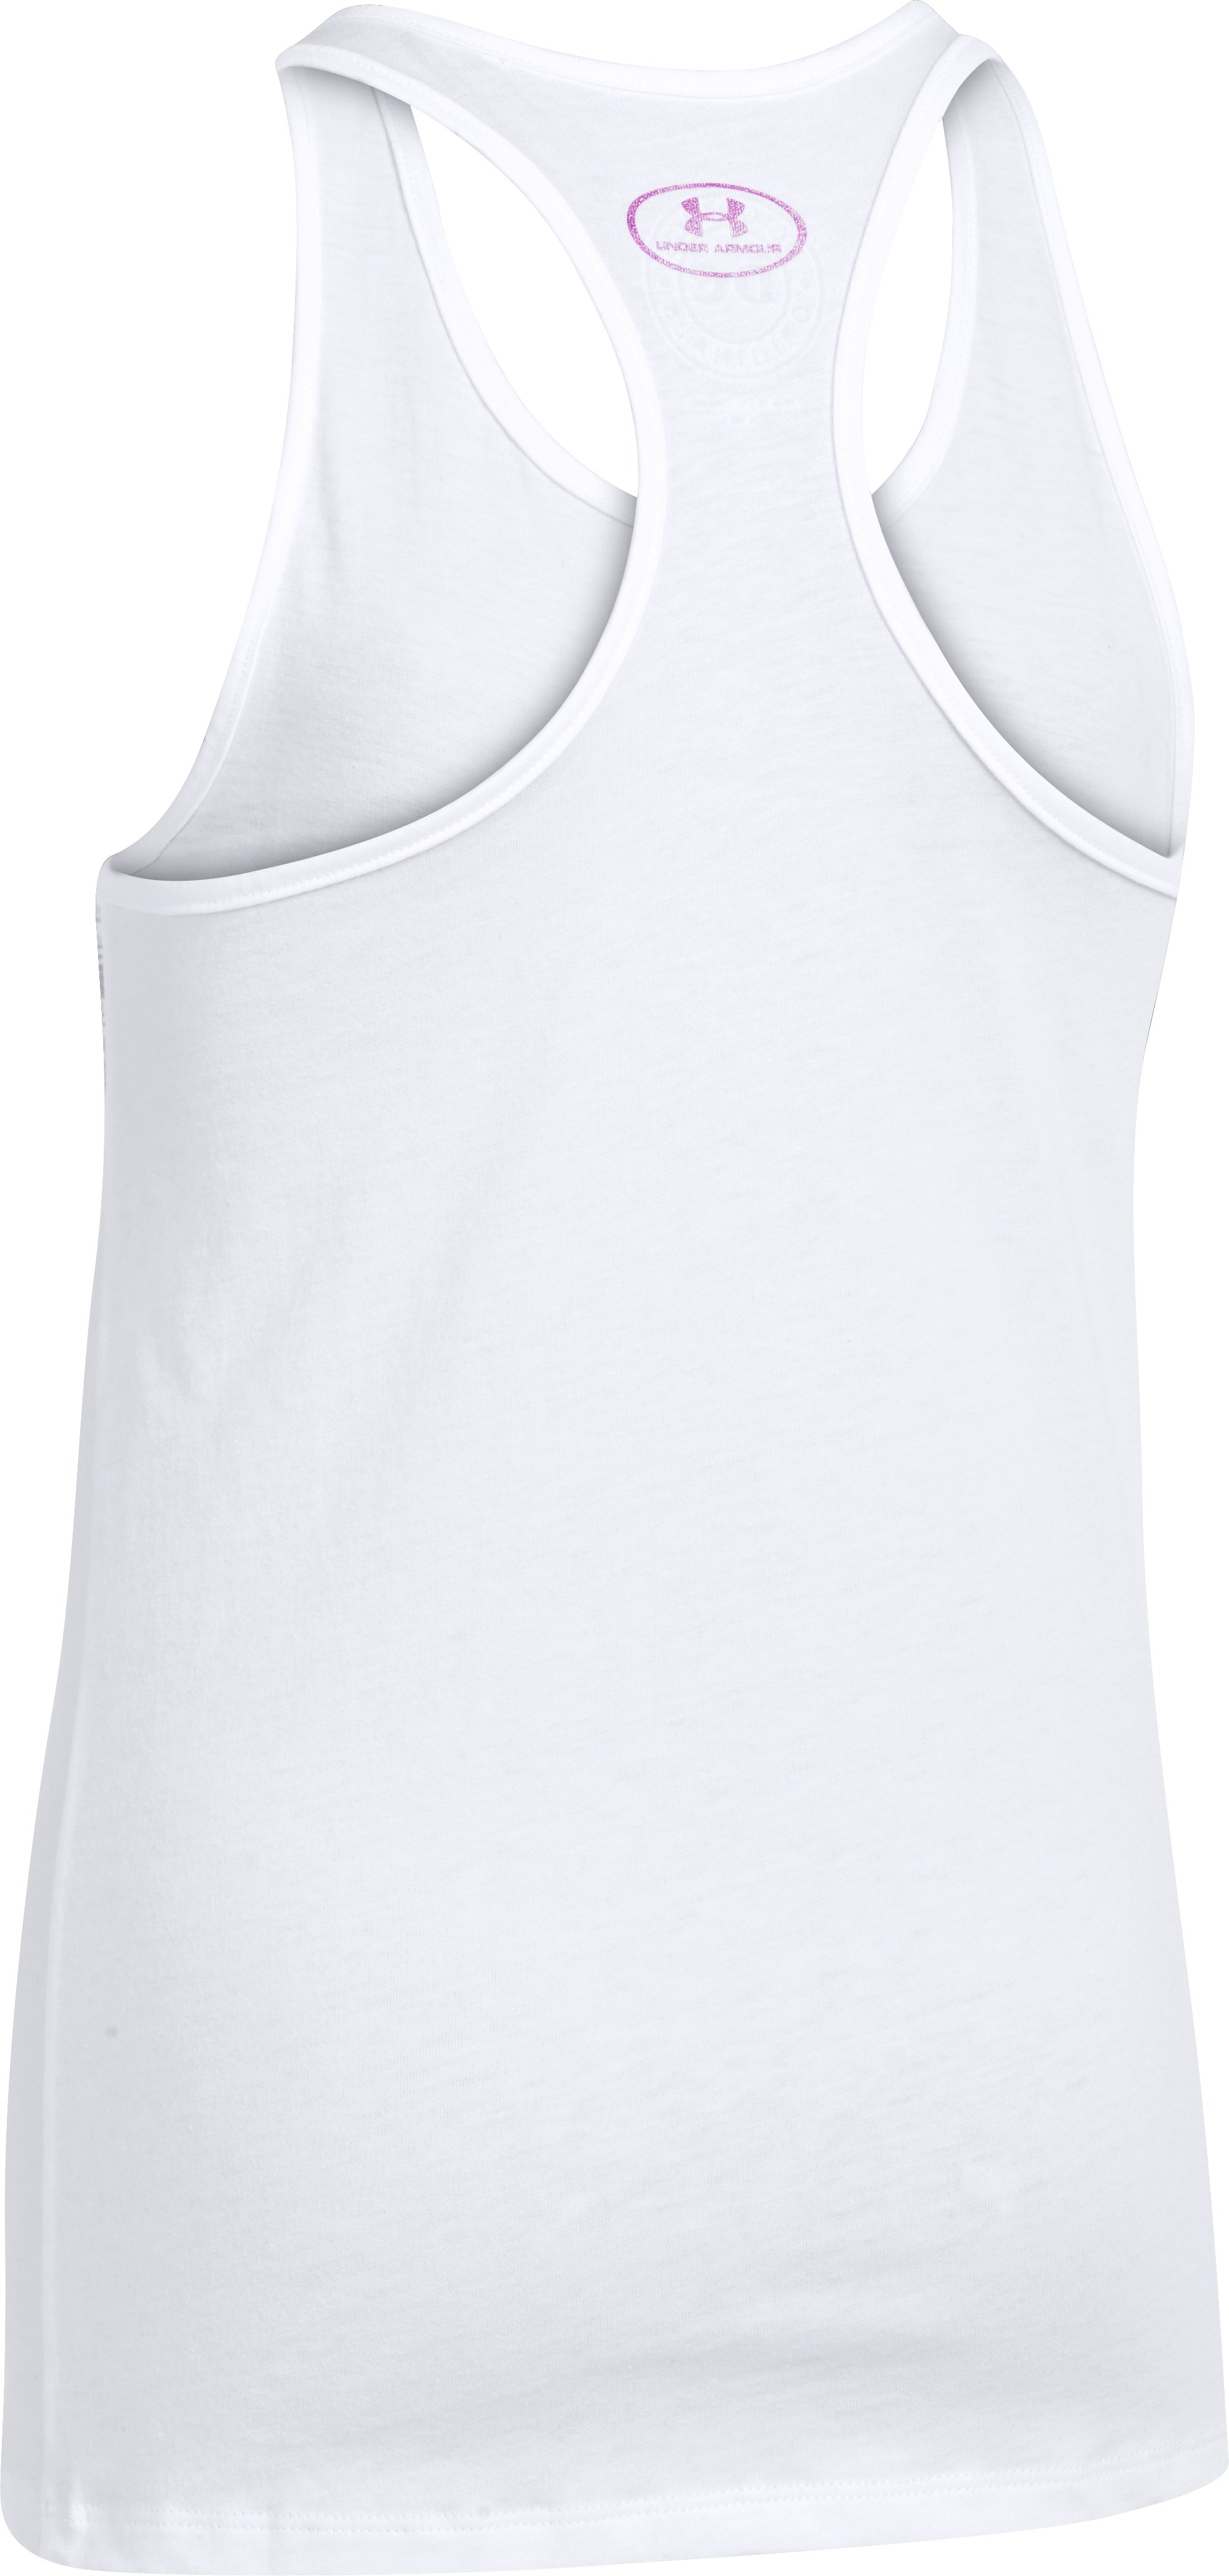 Girls' UA Wonder Woman Printed Logo Tank, White